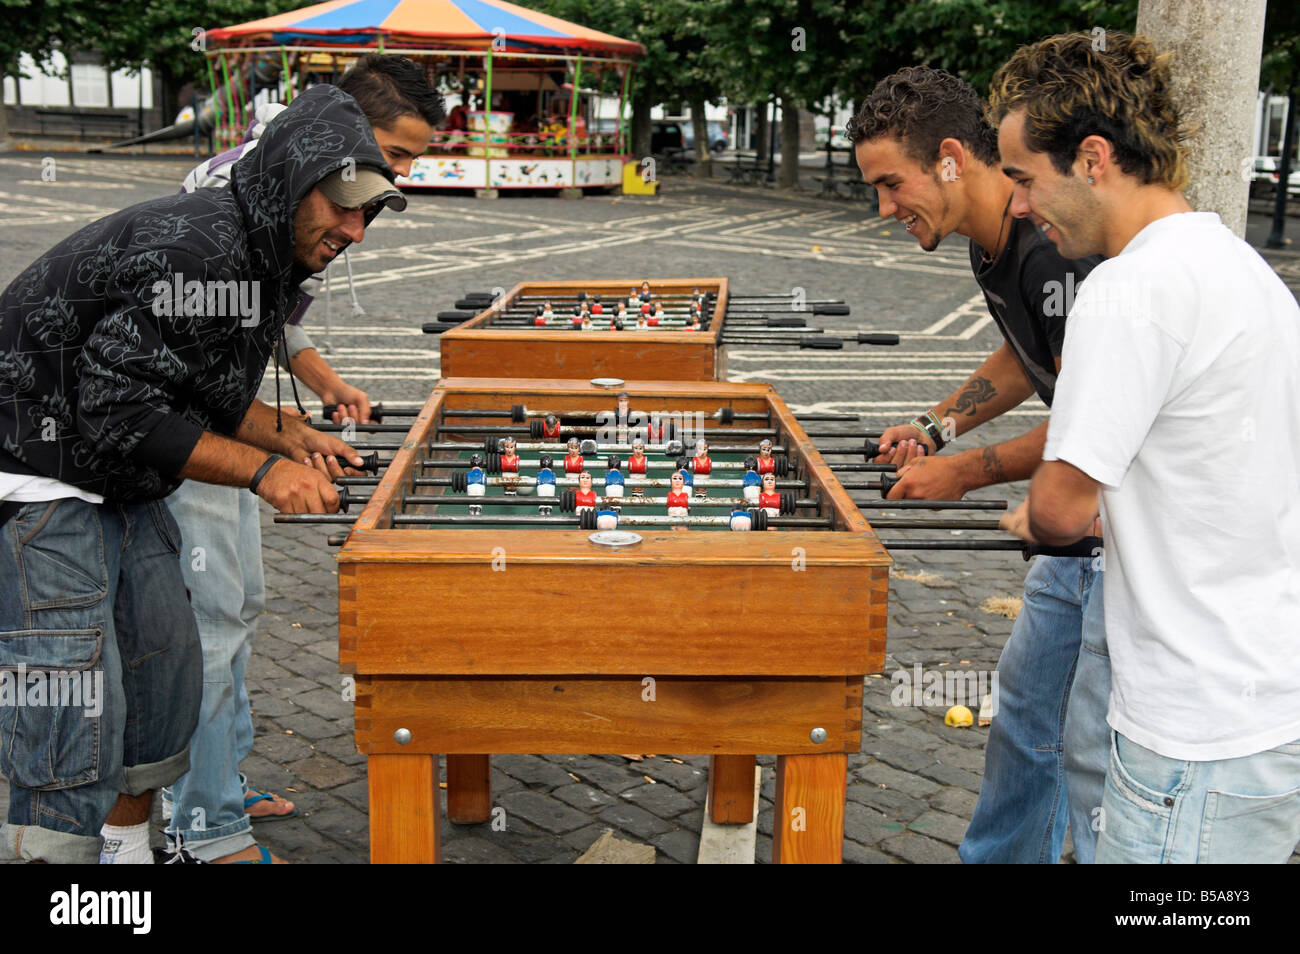 Four young men playing 'table football' in park outdoors - Stock Image